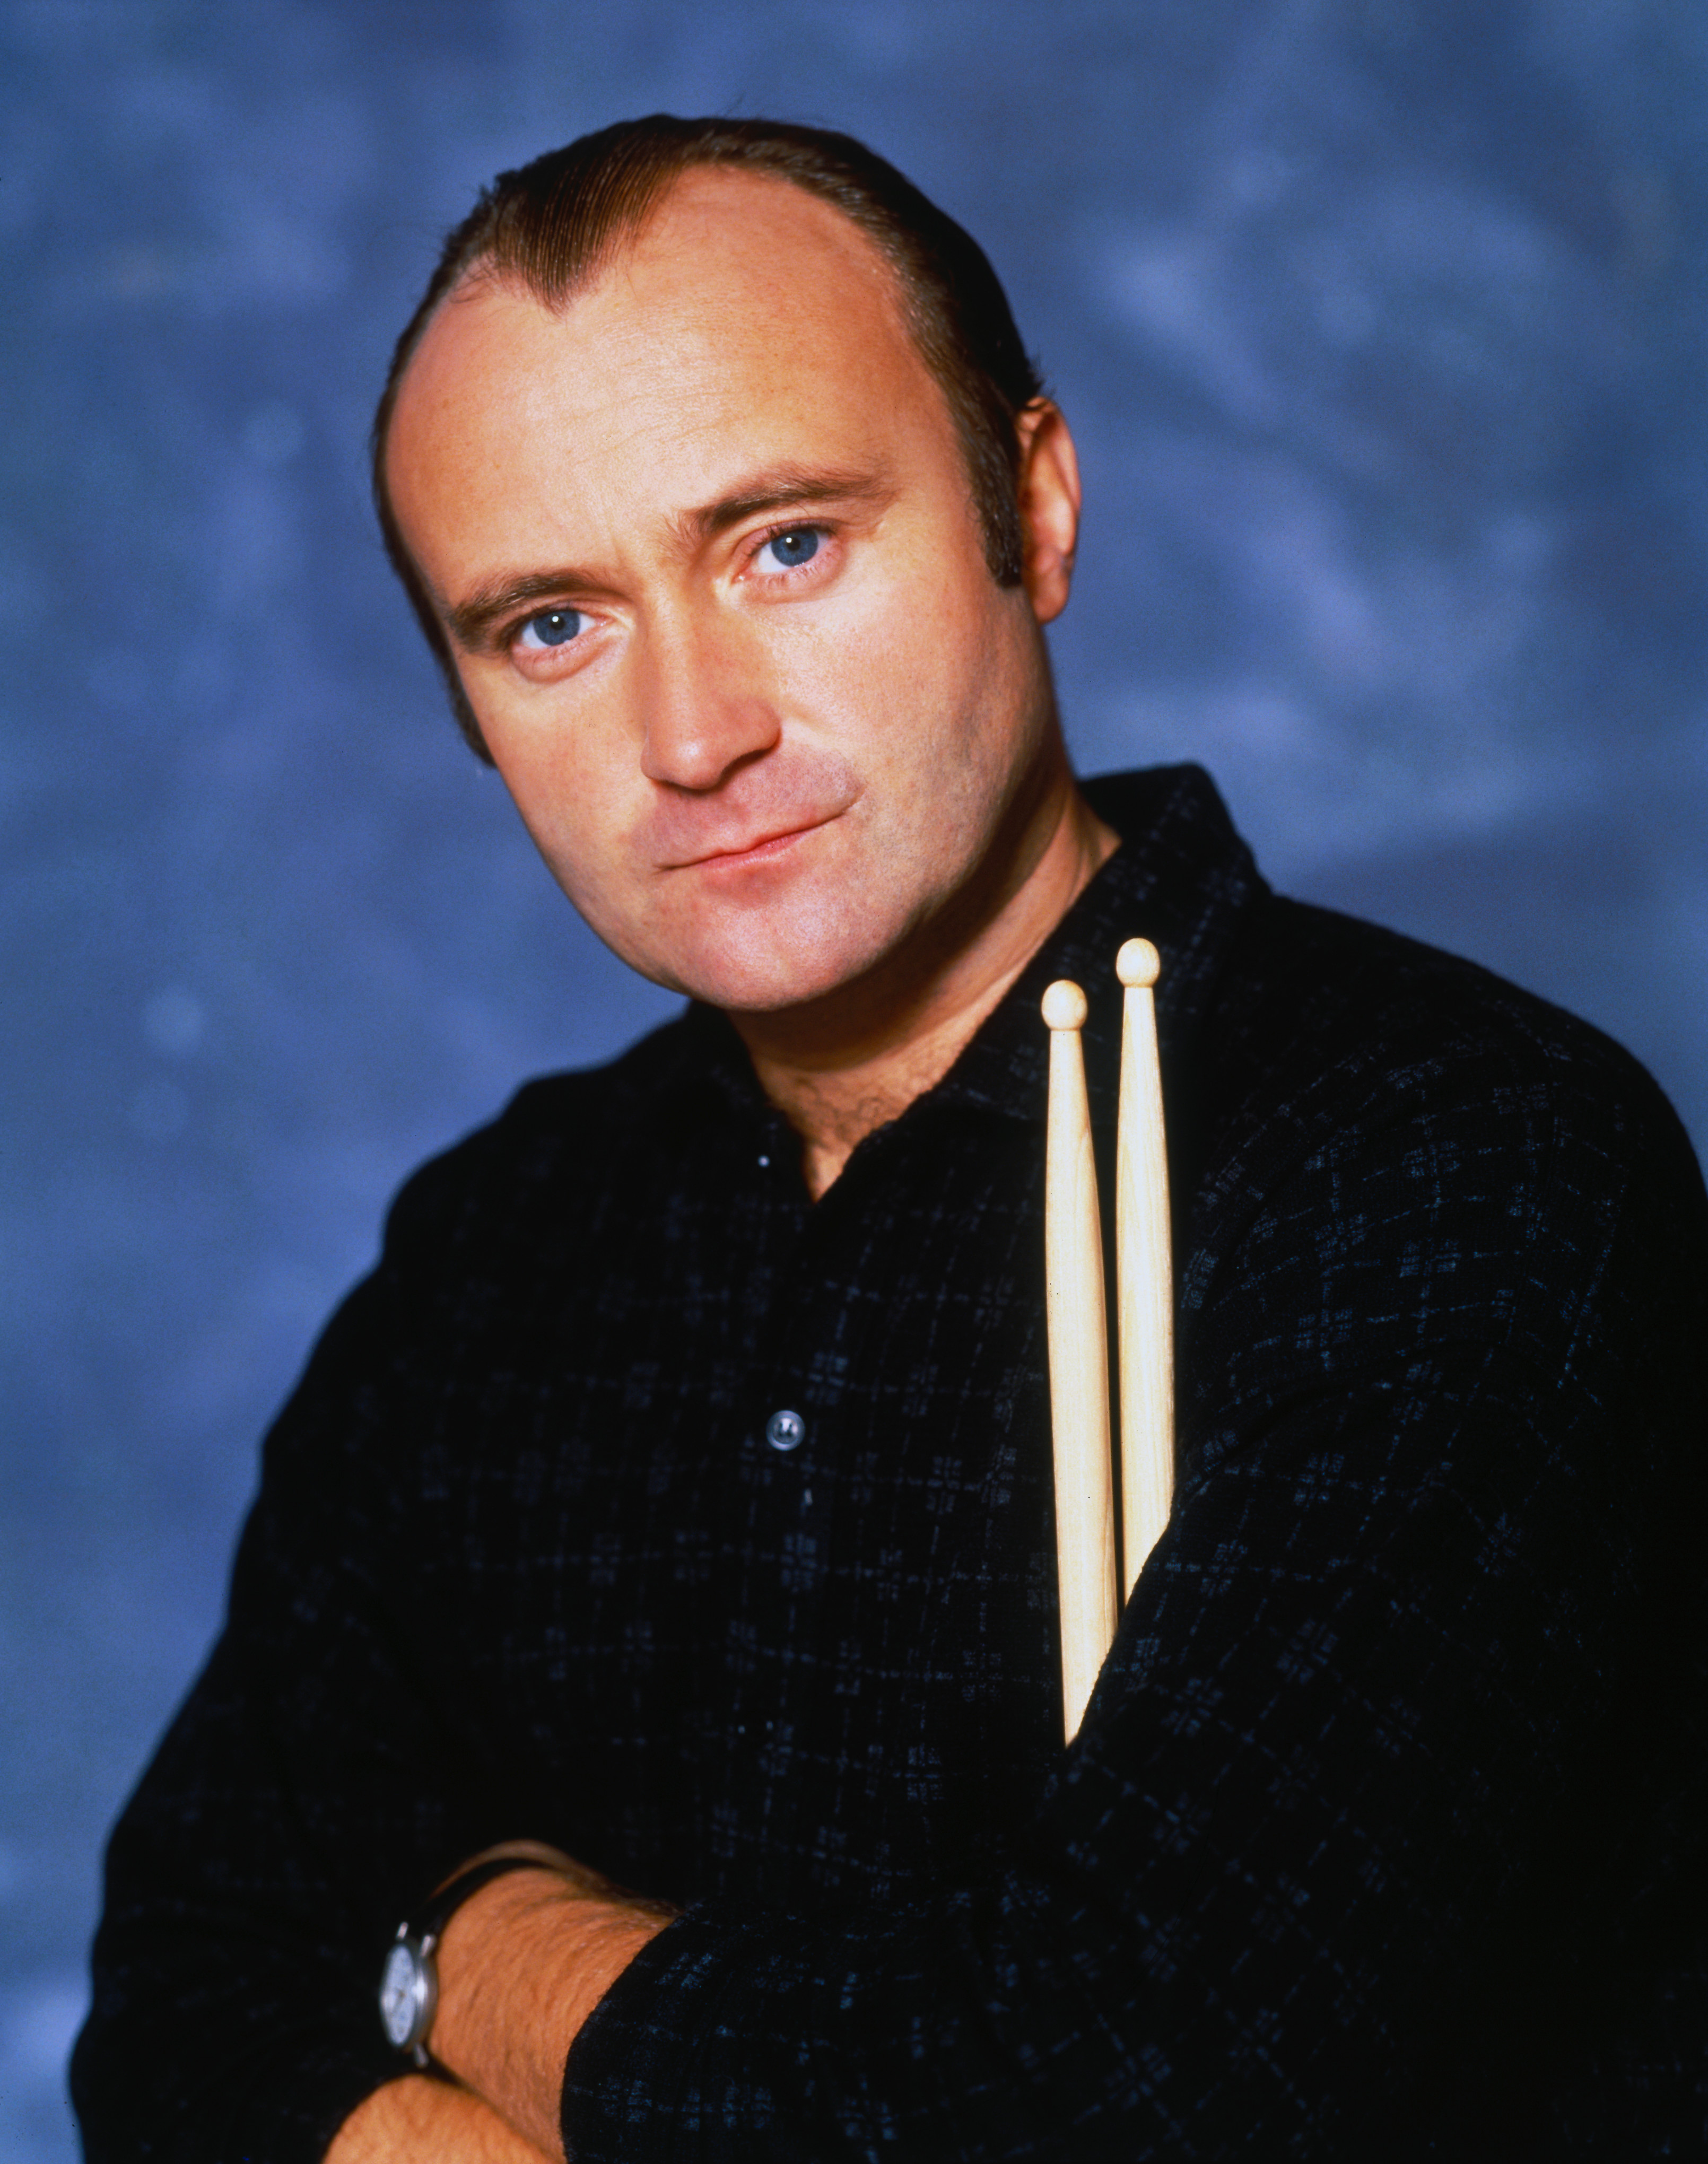 Phil Collins photo, pics, wallpaper - photo #